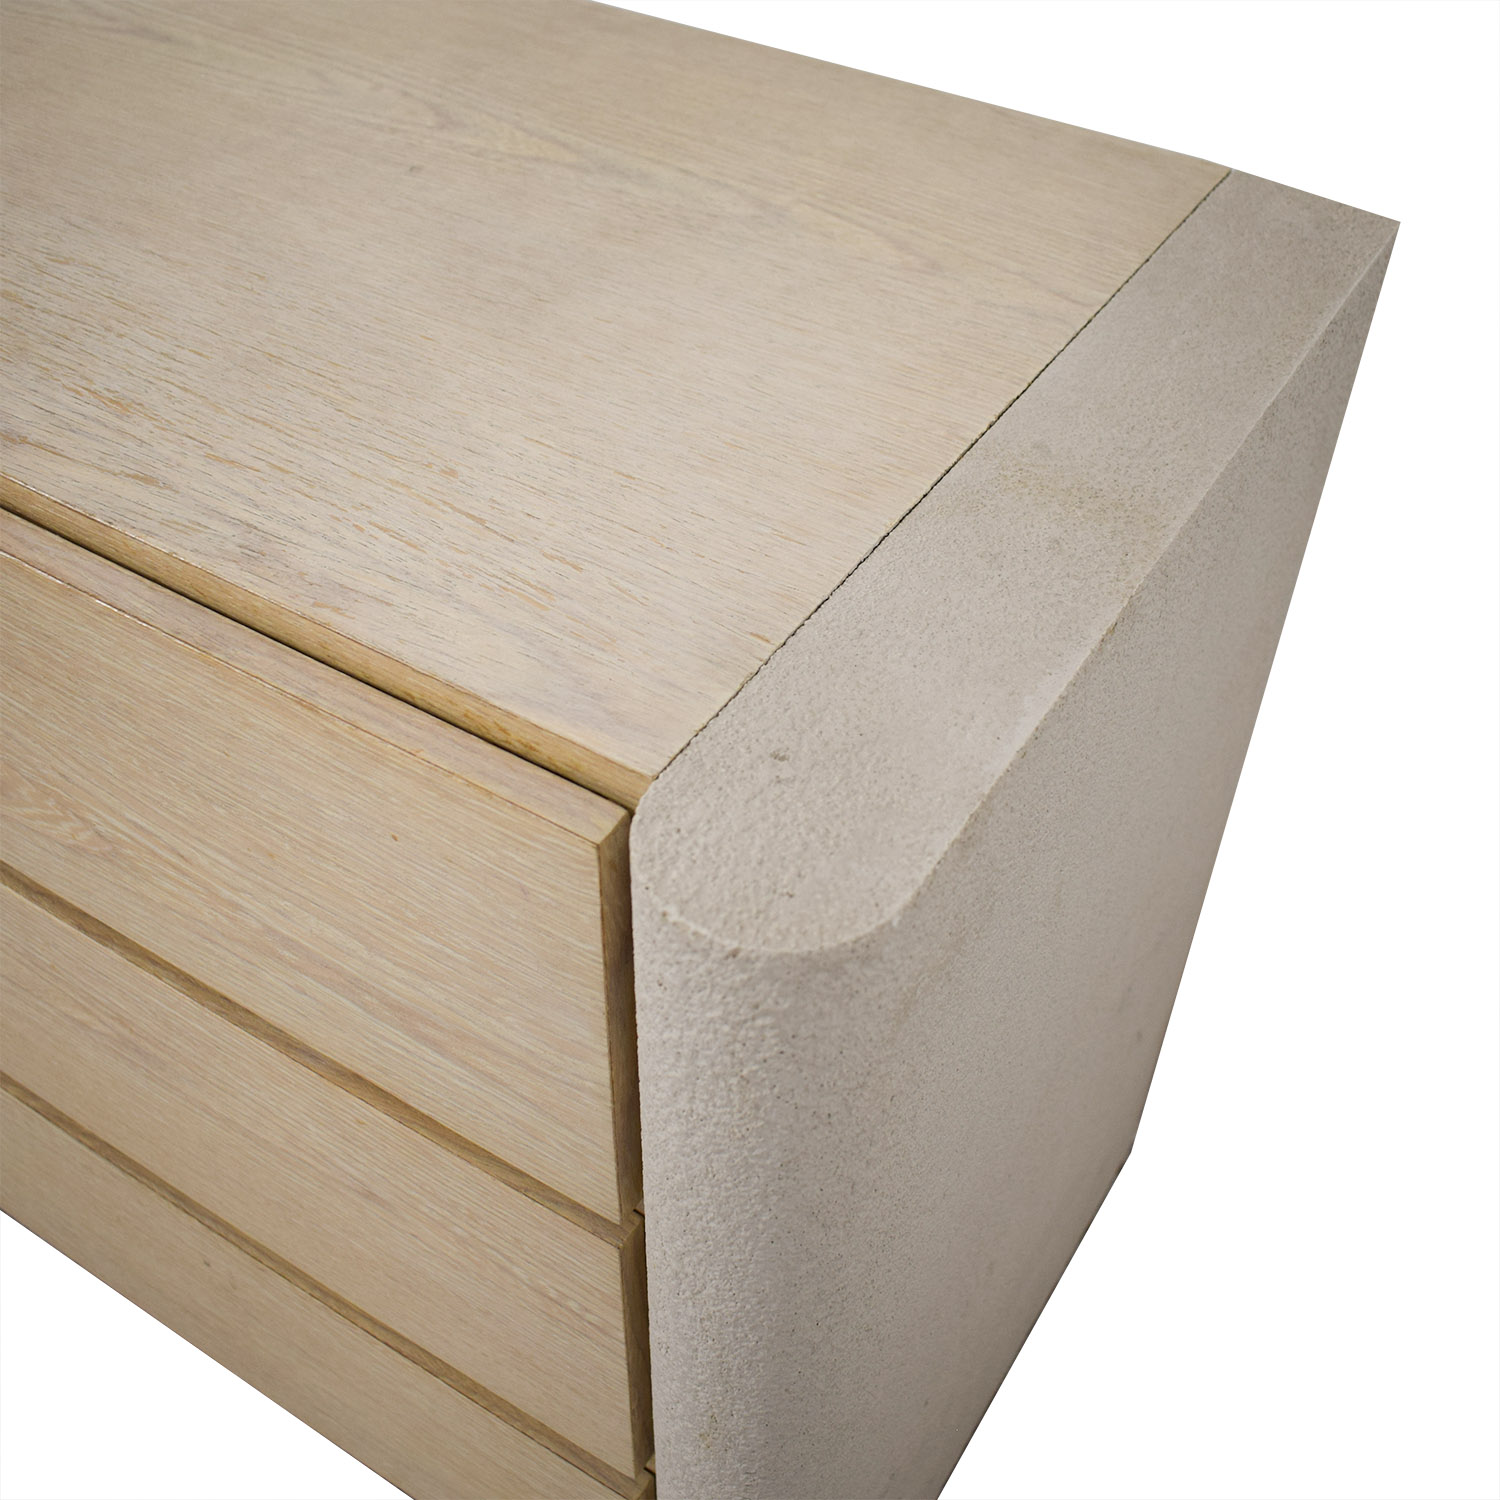 Nightstand with Drawers / Tables